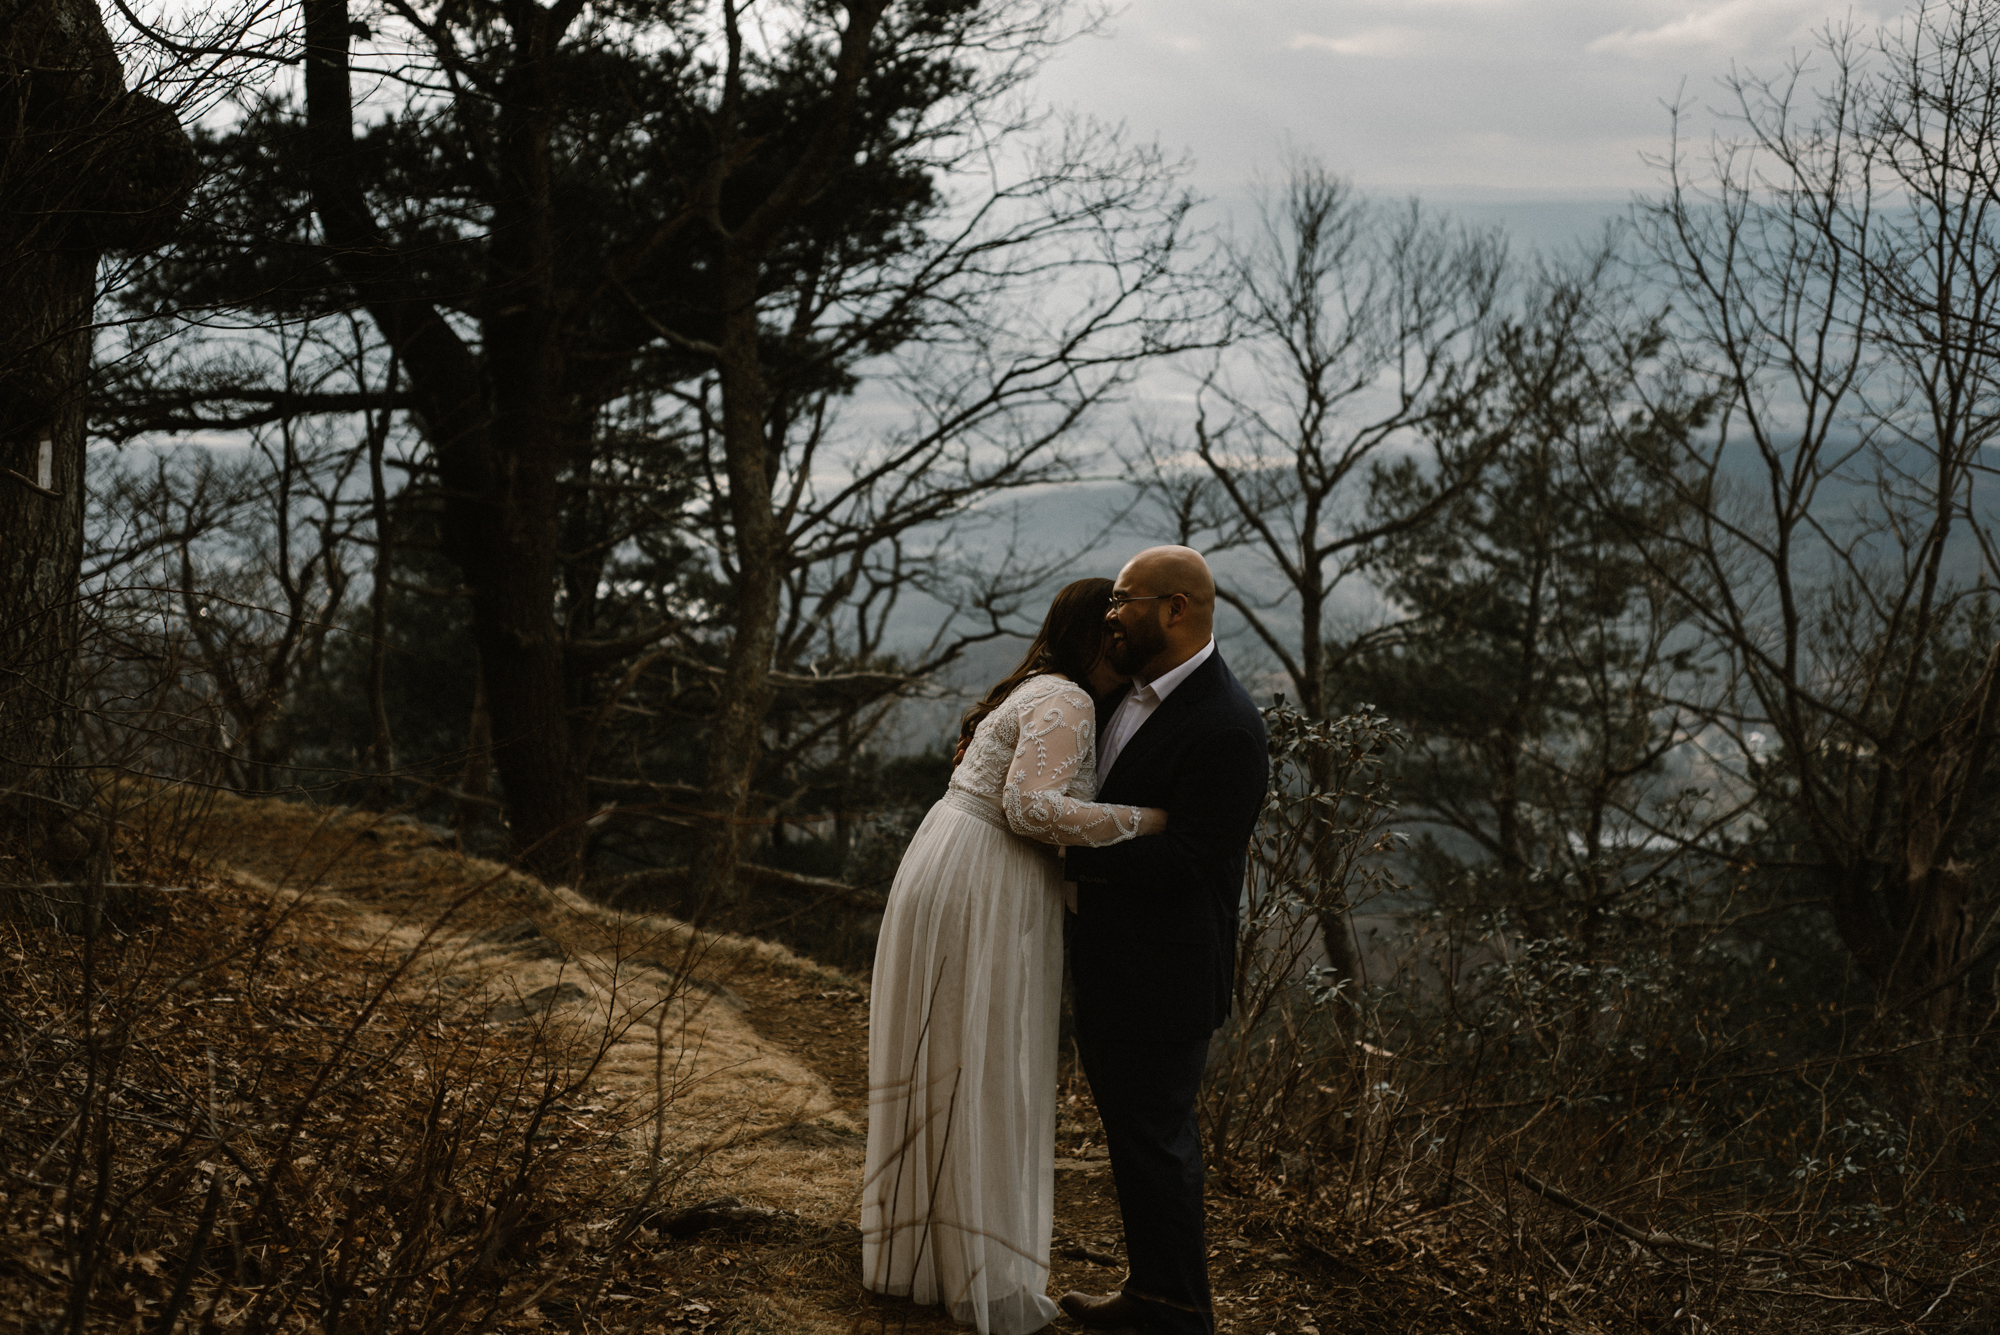 Emma and Jeddah - Intimate Luray Wedding - Shenandoah National Park Wedding - Adventure Elopement in Virginia - Shenandoah National Park Elopement_65.jpg